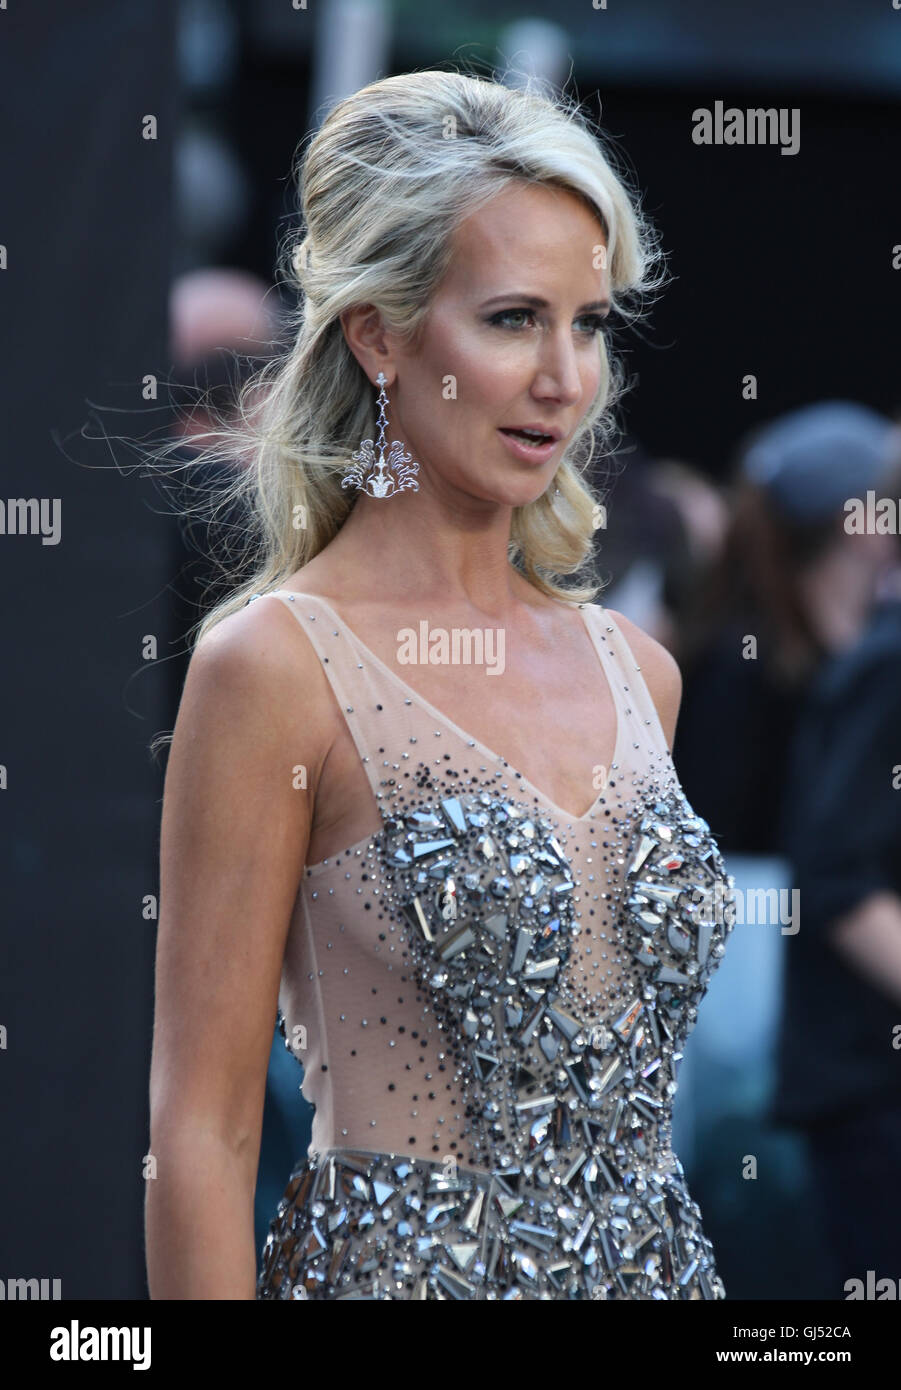 Snapchat Victoria Hervey nudes (25 photos), Tits, Hot, Instagram, cleavage 2018